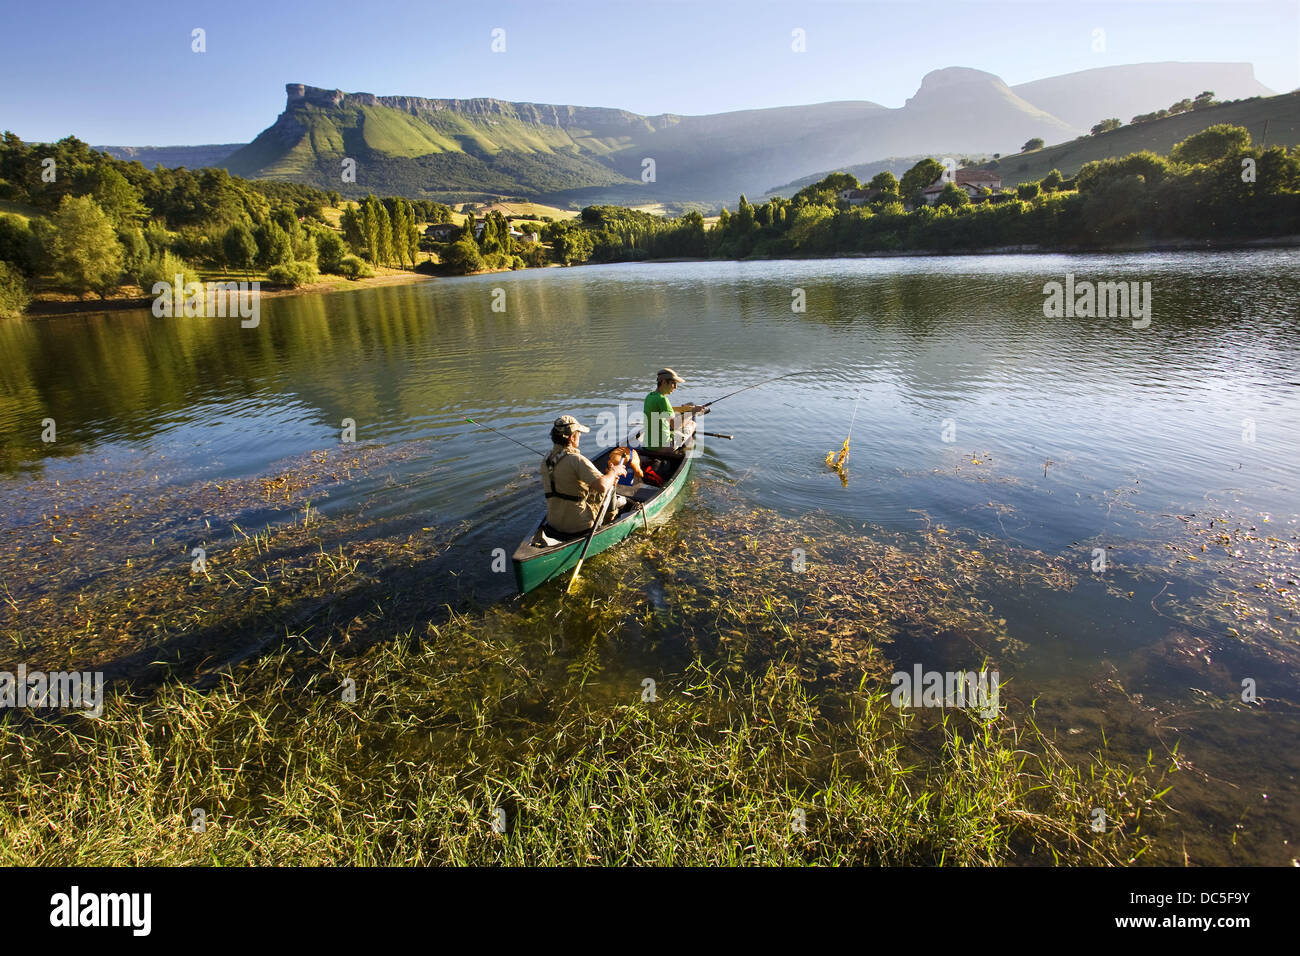 Fishing in a canoe, reservoir of Maroño, Sierra Salvada in background, Alava, Basque Country, Spain - Stock Image